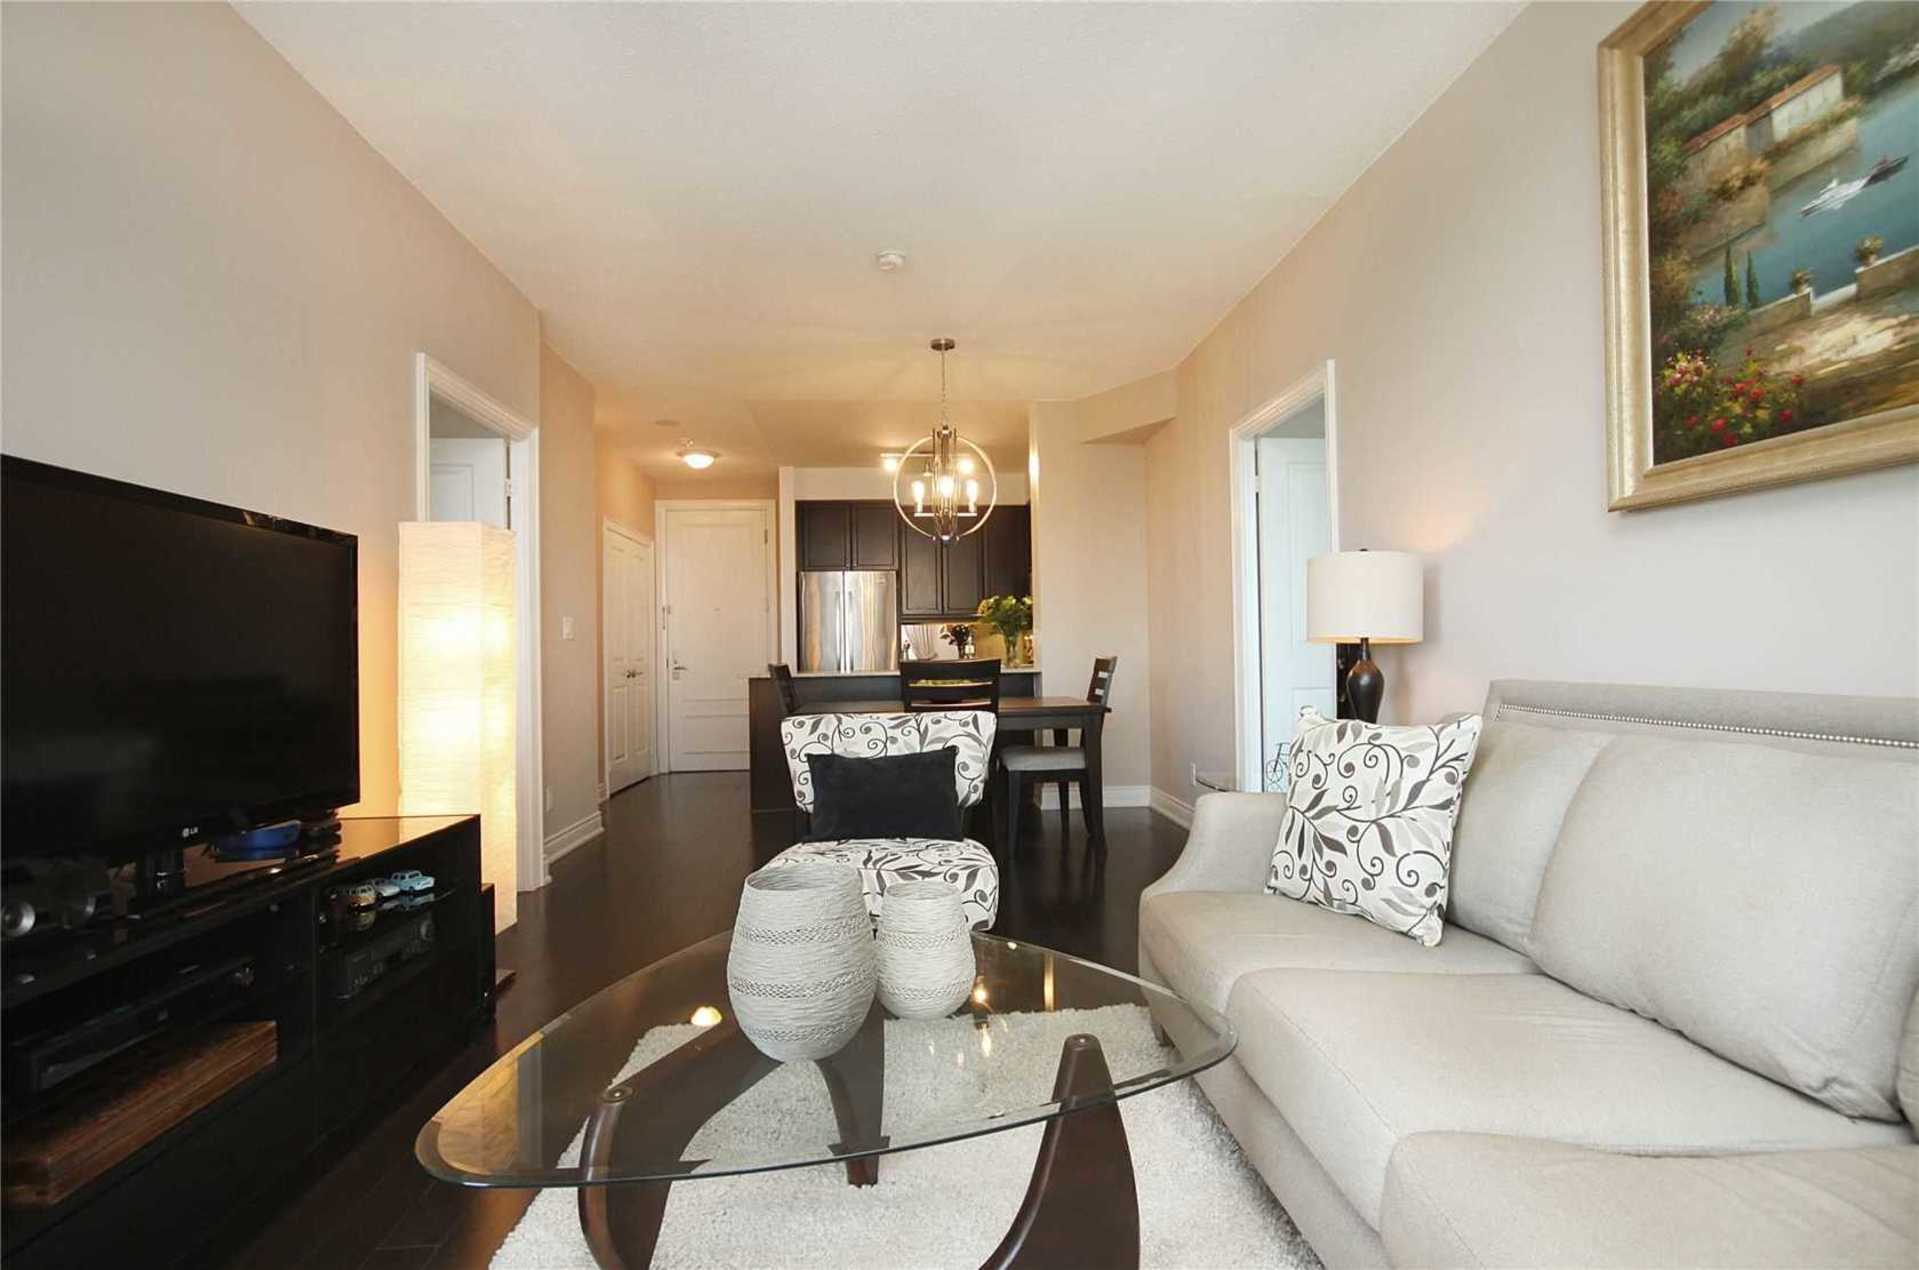 Living Room at 1209 - 10 Bloorview Place, Don Valley Village, Toronto